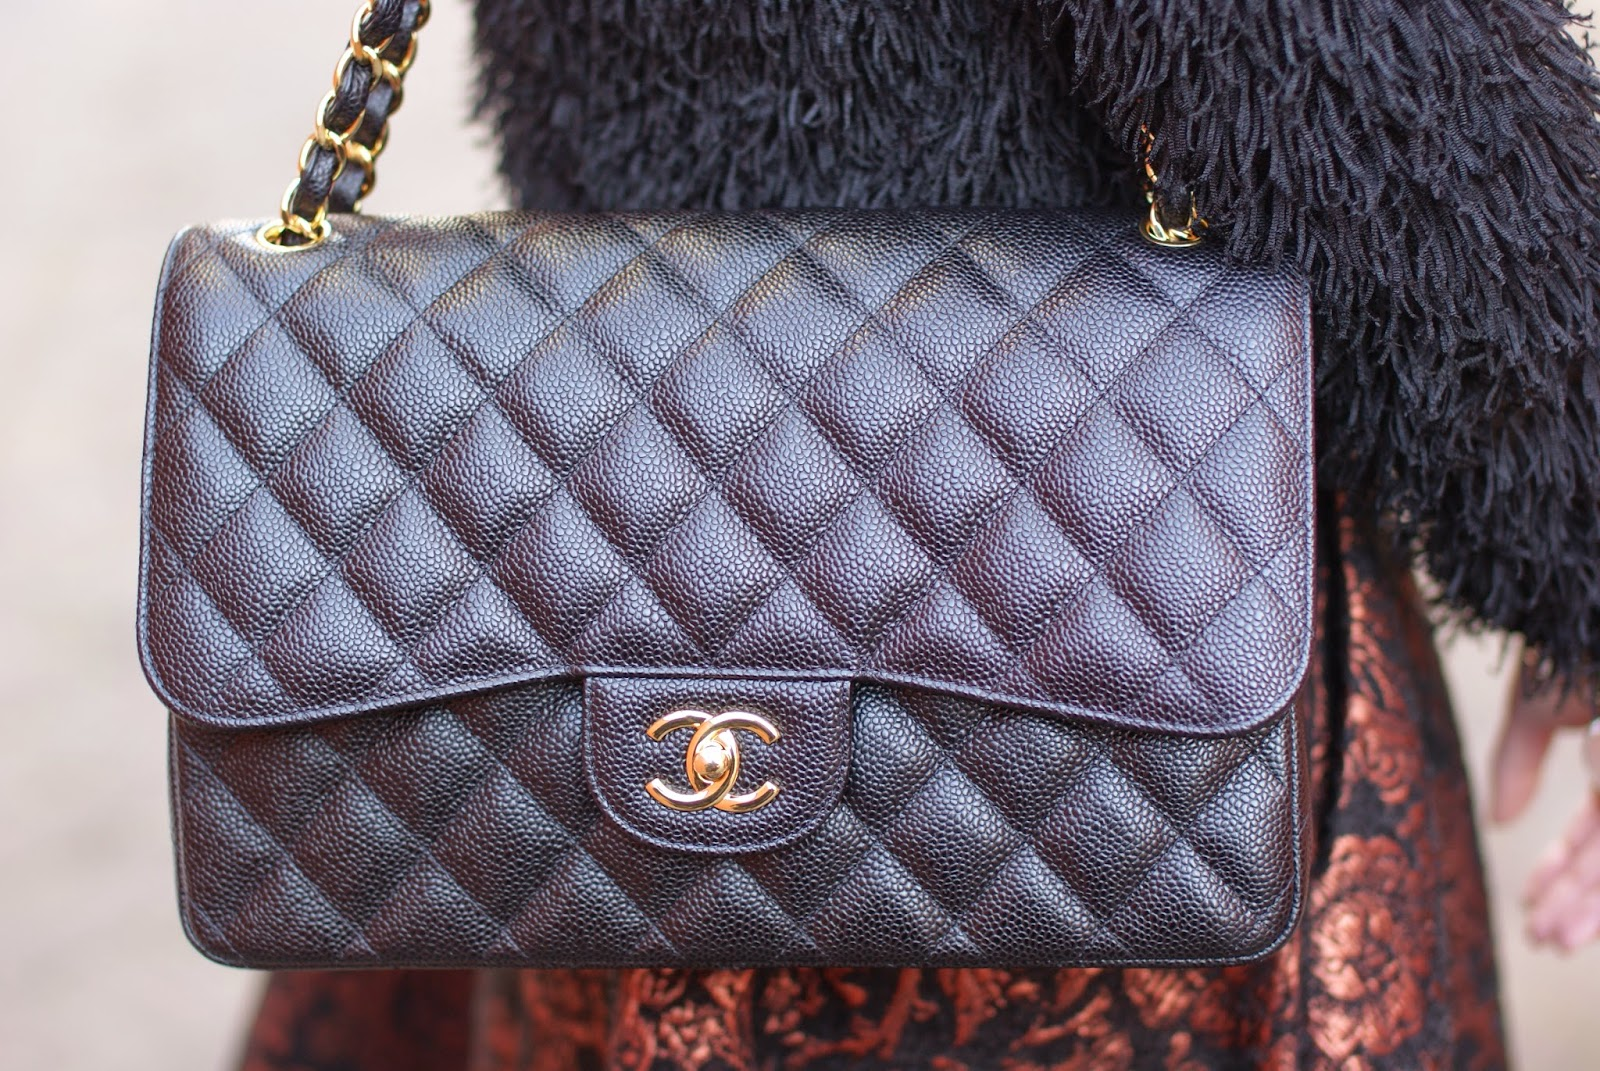 Chanel classic flap bag caviar leather, Fashion and Cookies, fashion blogger